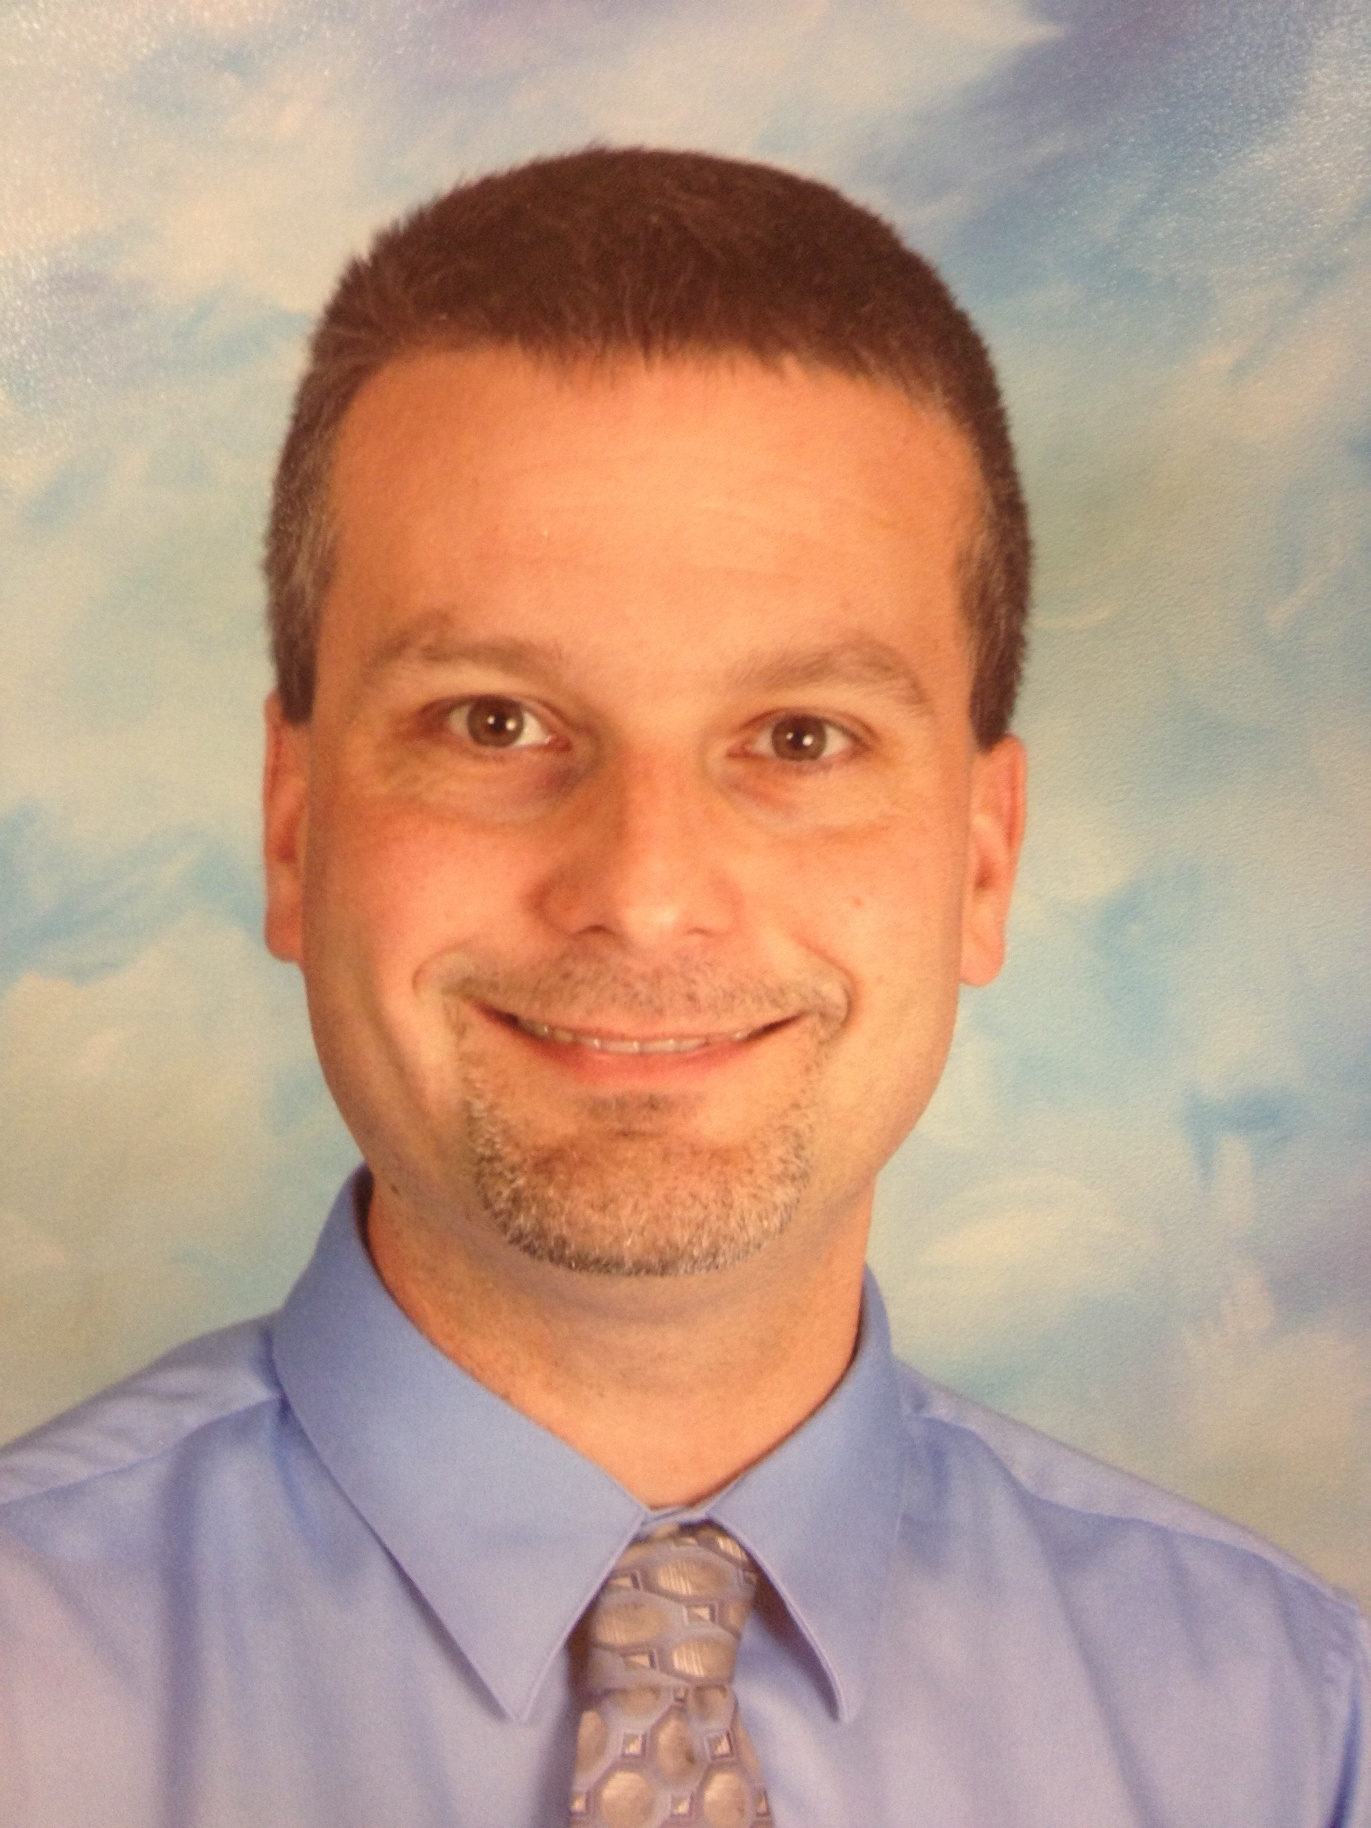 This is an image of Scott Sisler, principal at South Penn Elementary School